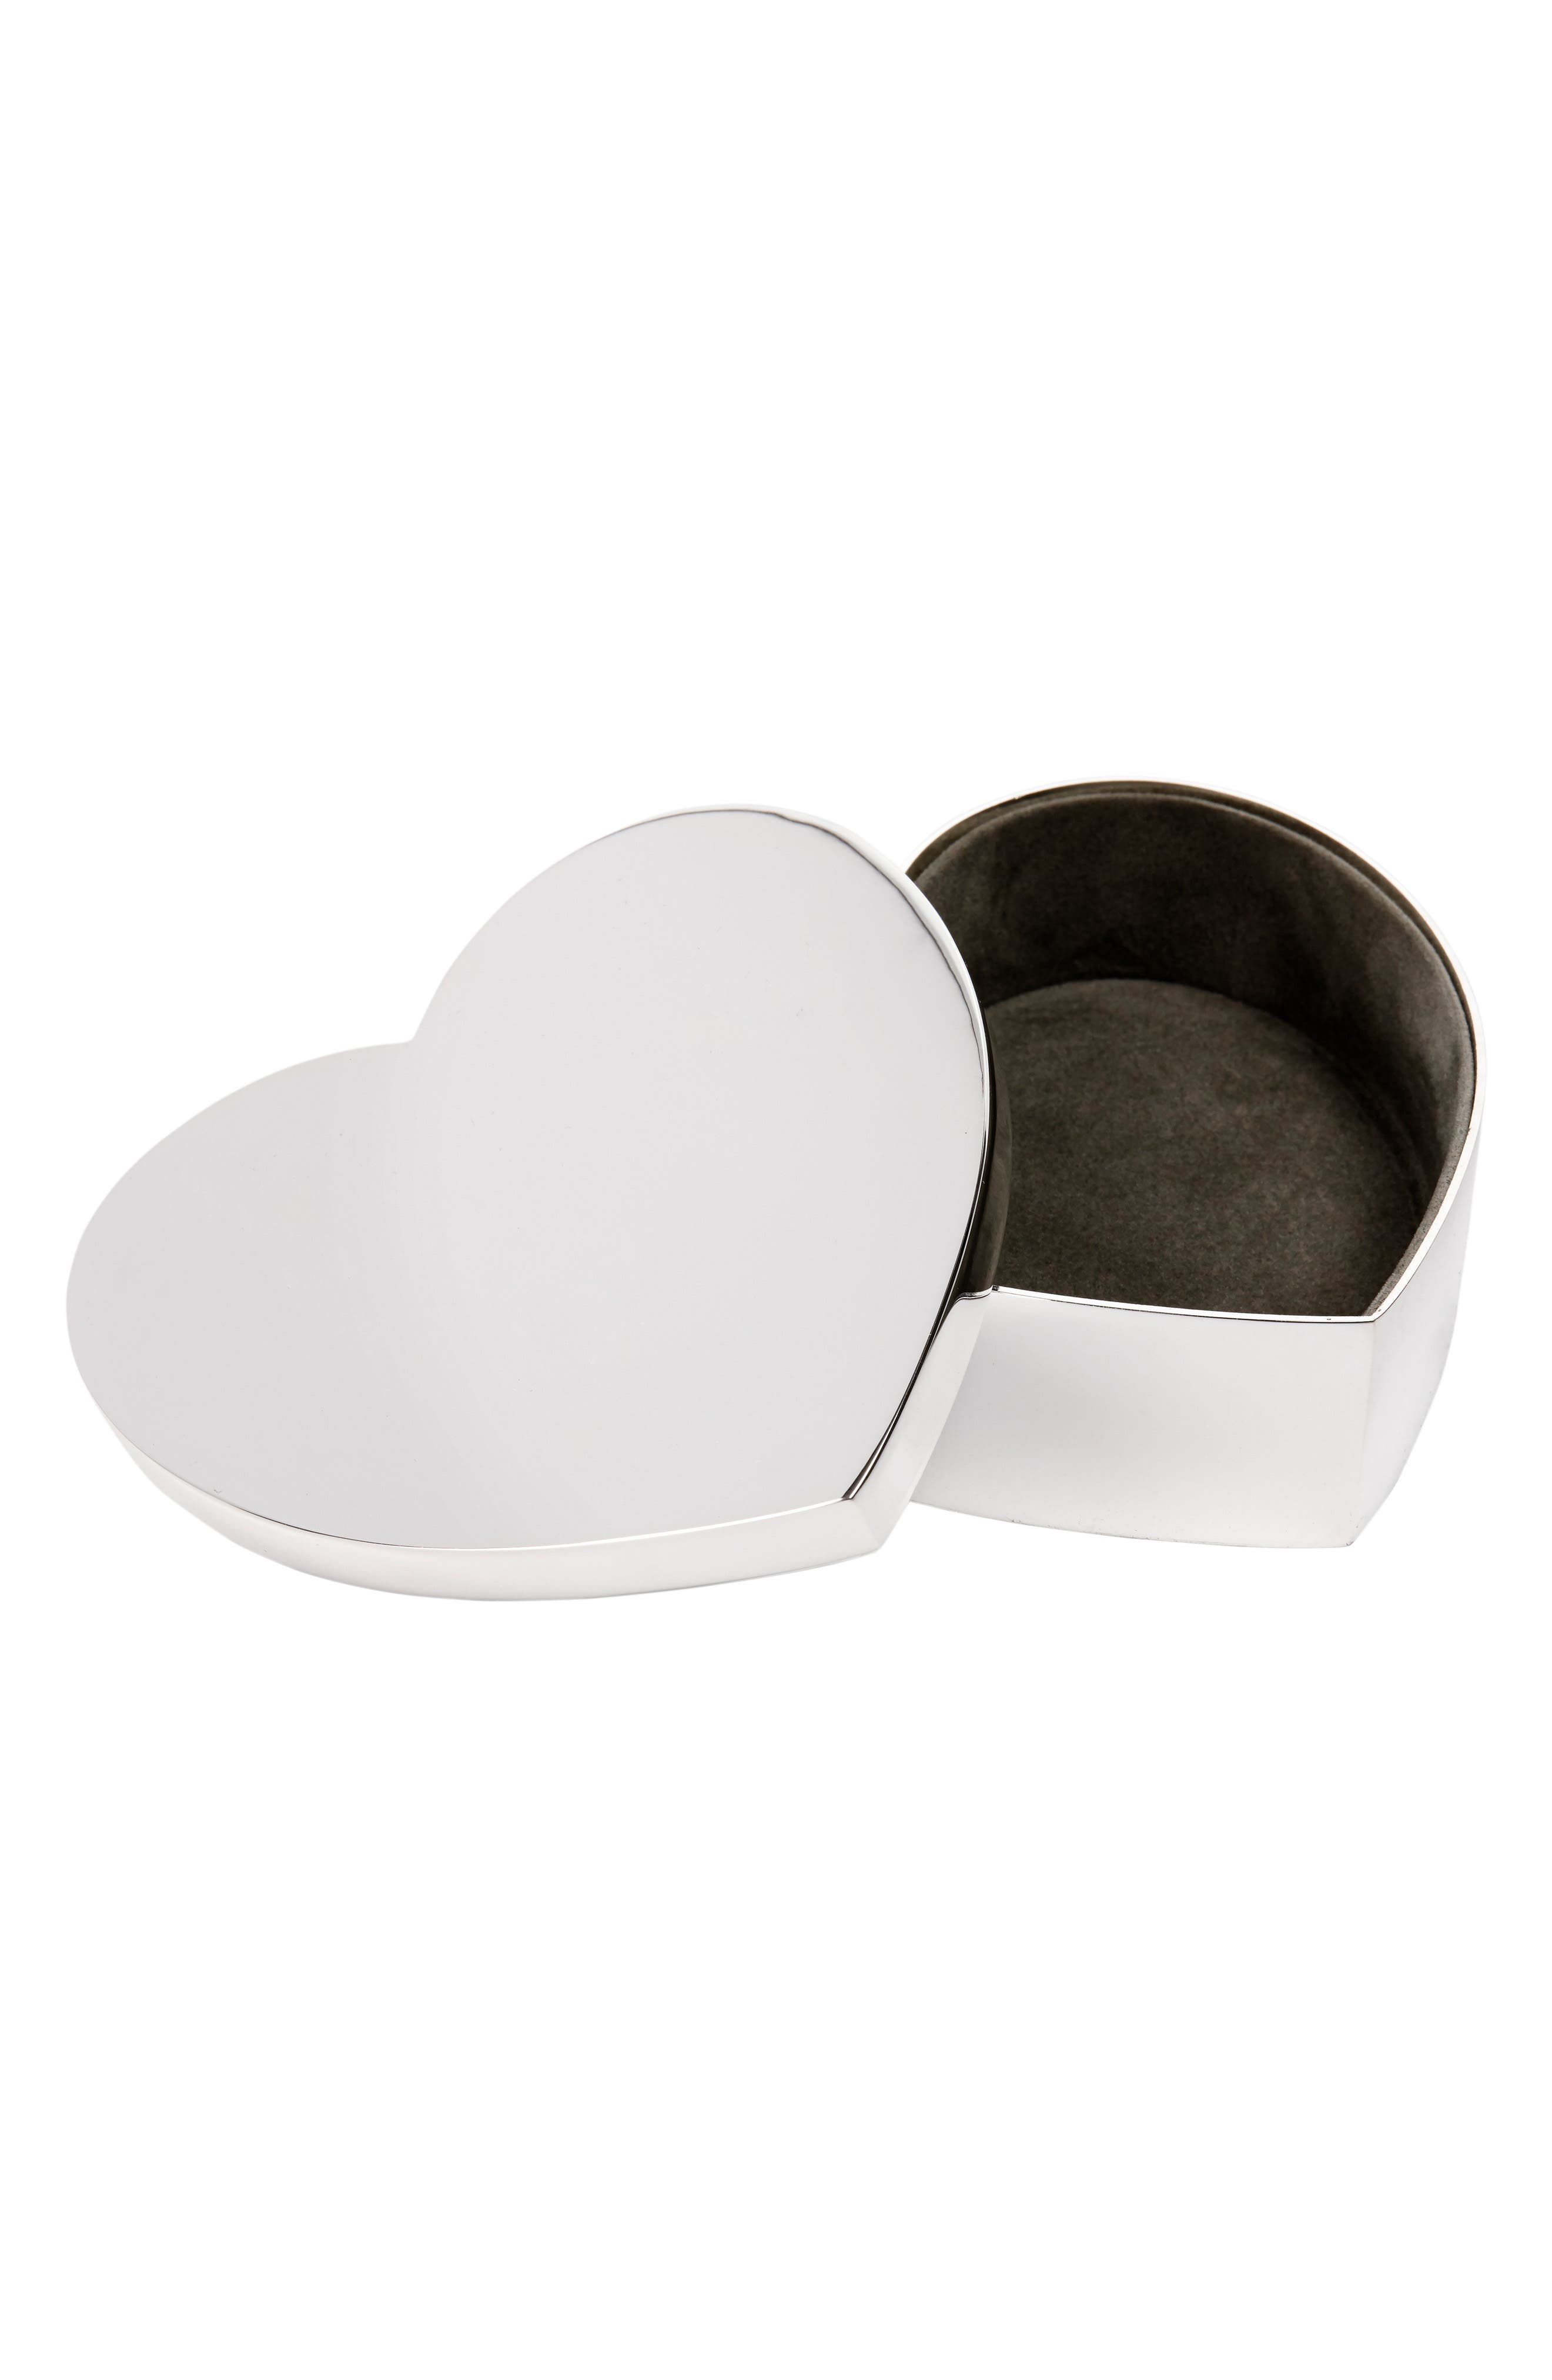 THE WHITE COMPANY, Silver Plated Heart Box, Main thumbnail 1, color, SILVER